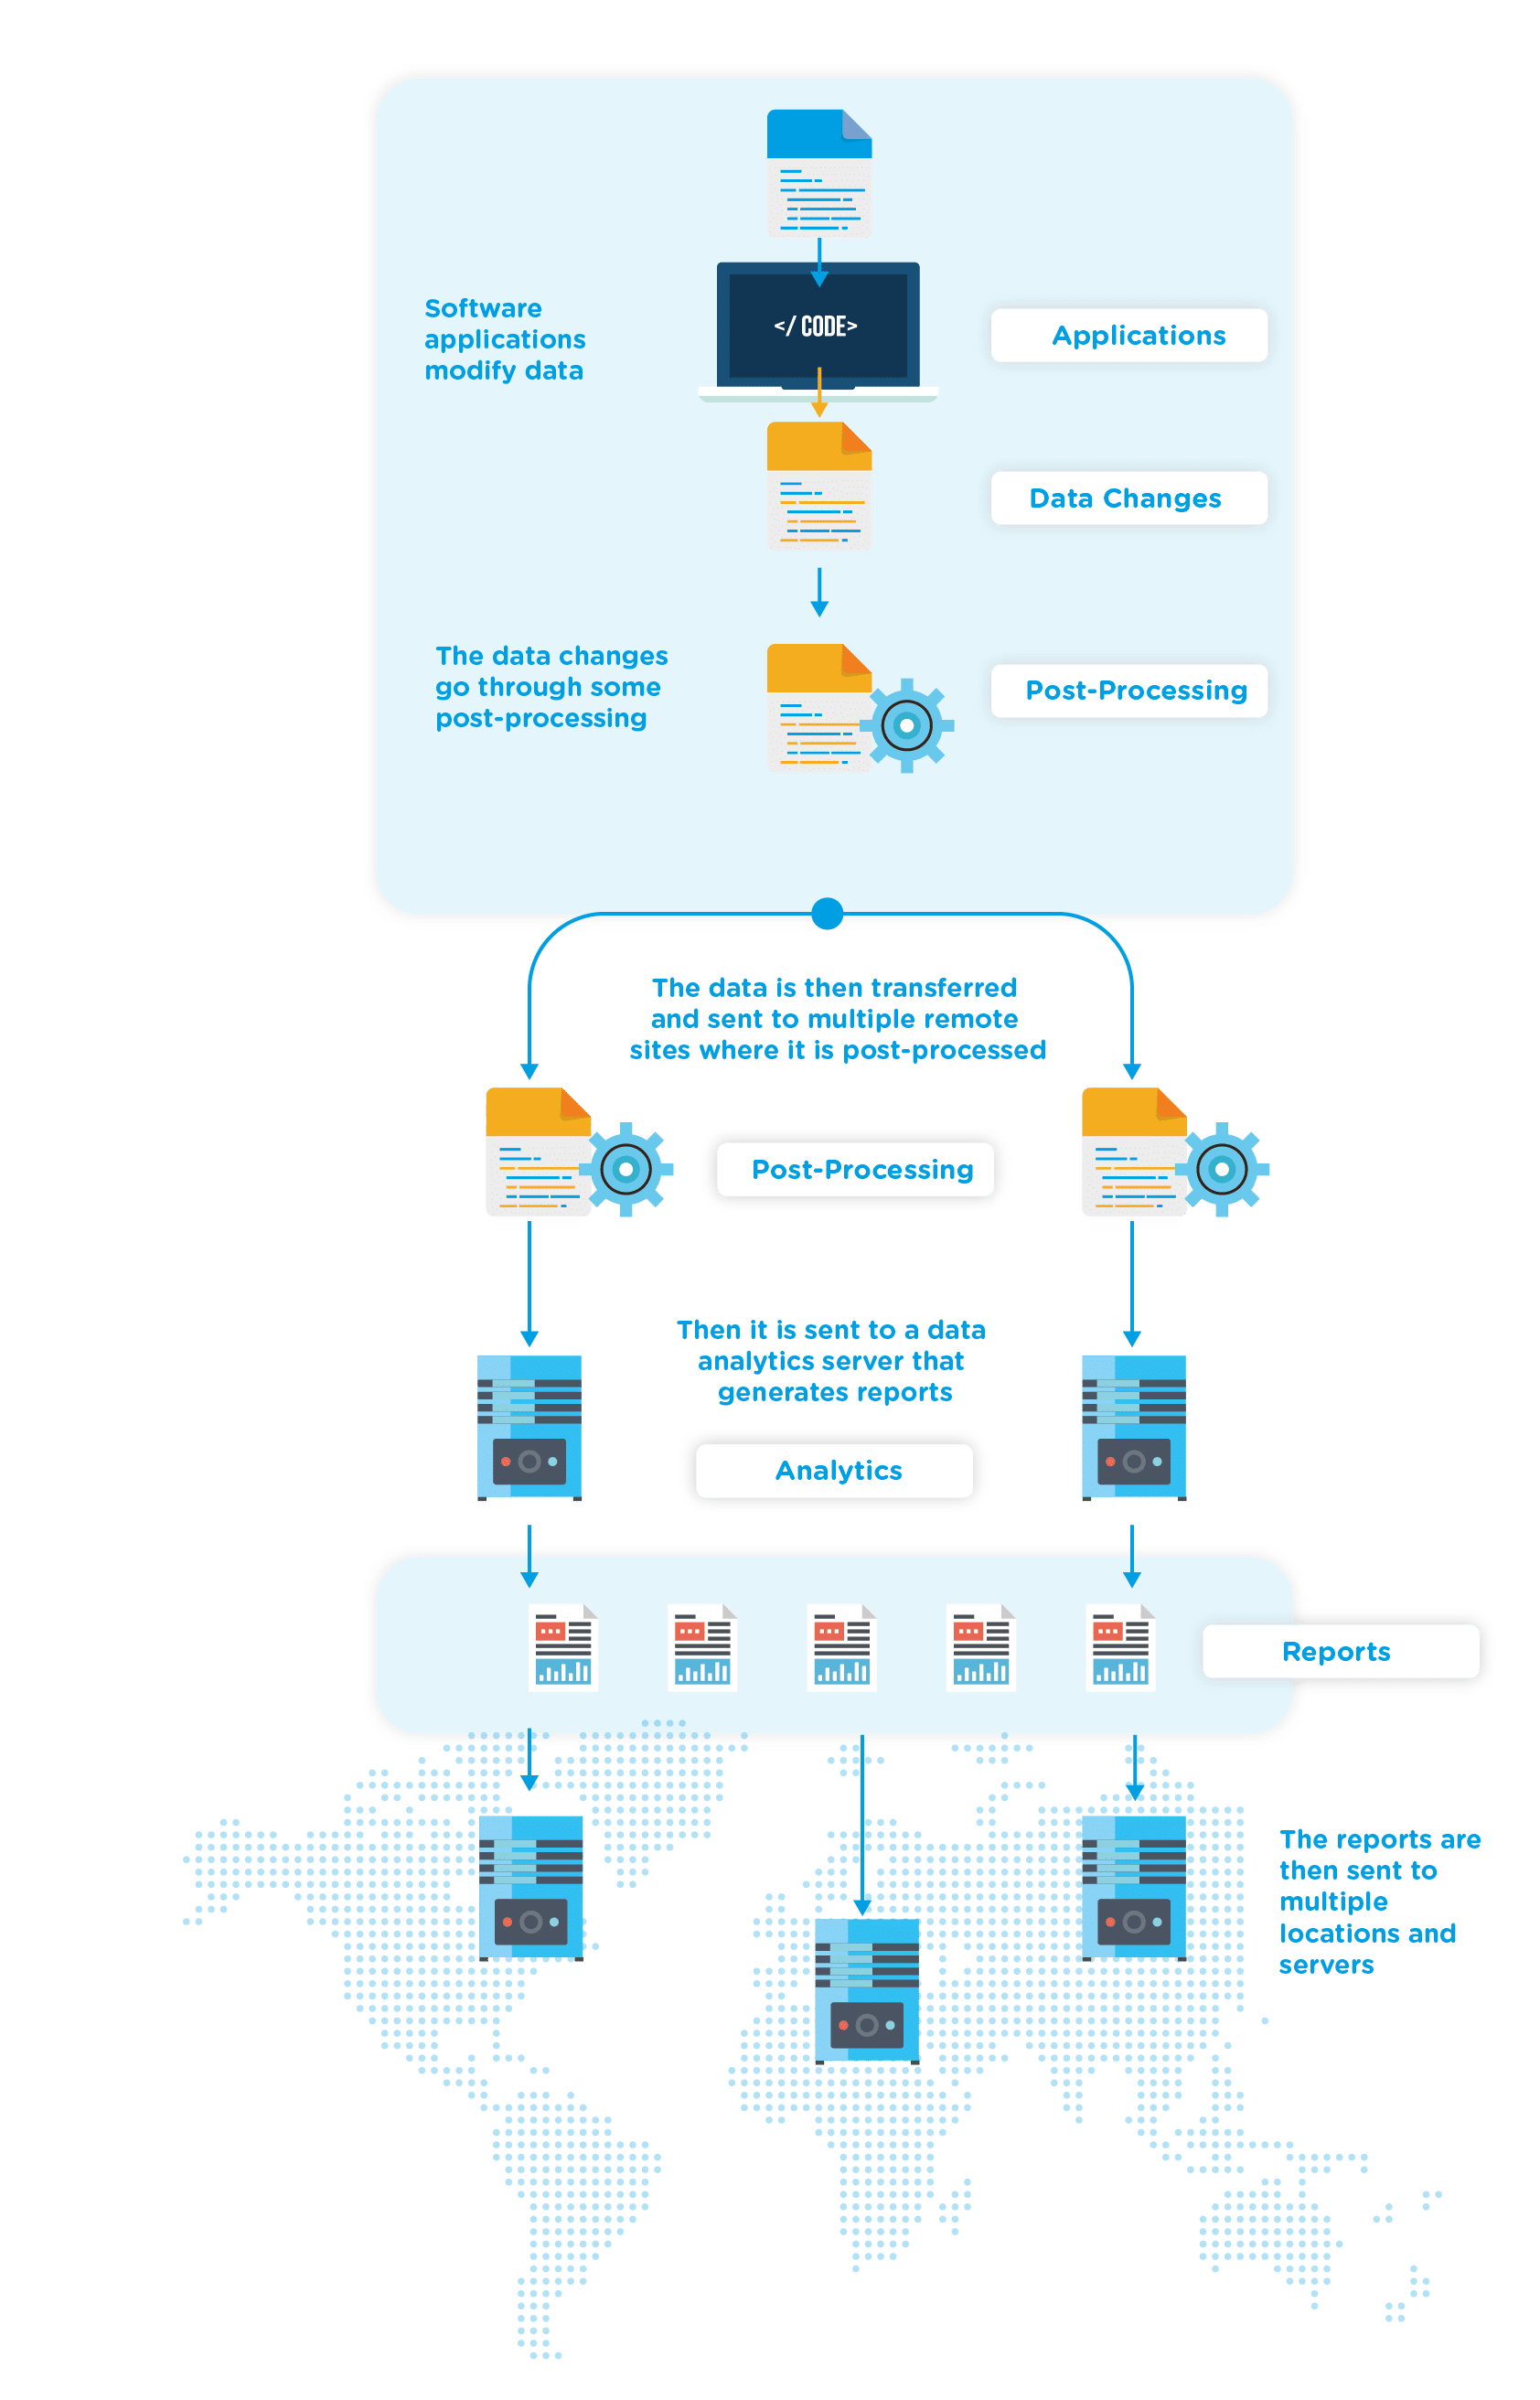 sync files, post and pre processing infographic